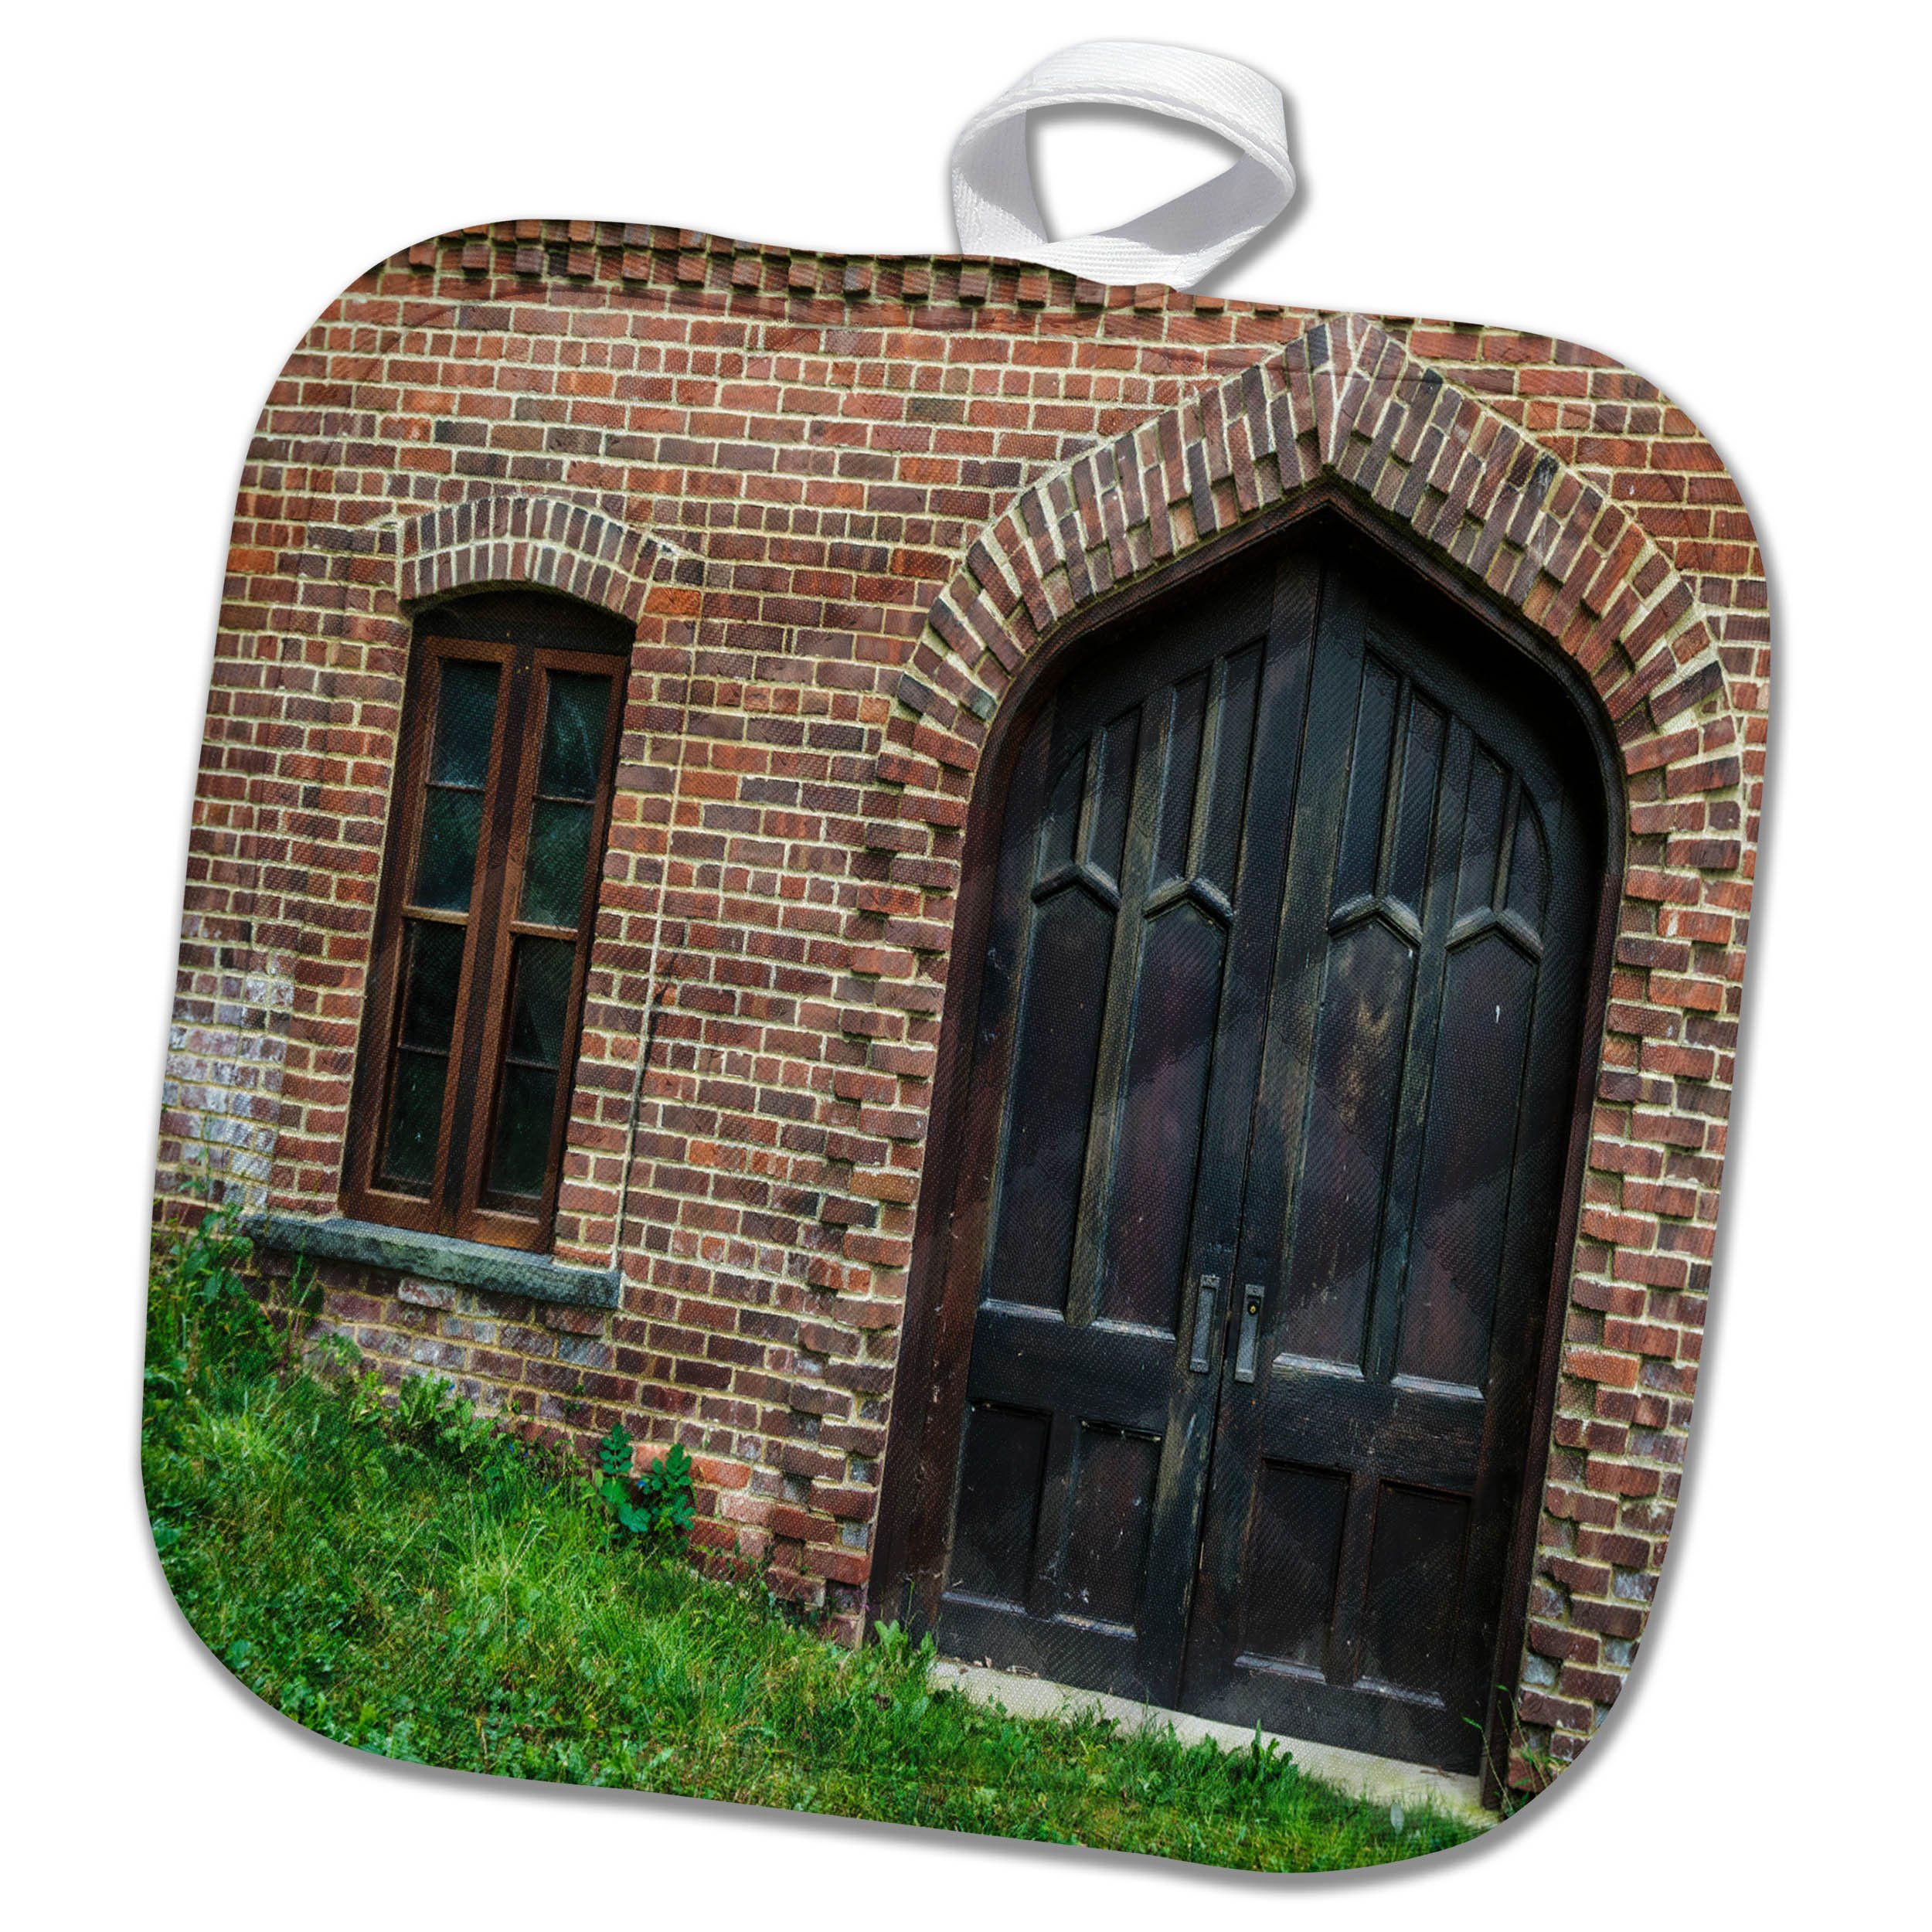 3dRose Roni Chastain Photography - Window and Door - 8x8 Potholder (phl_269609_1)